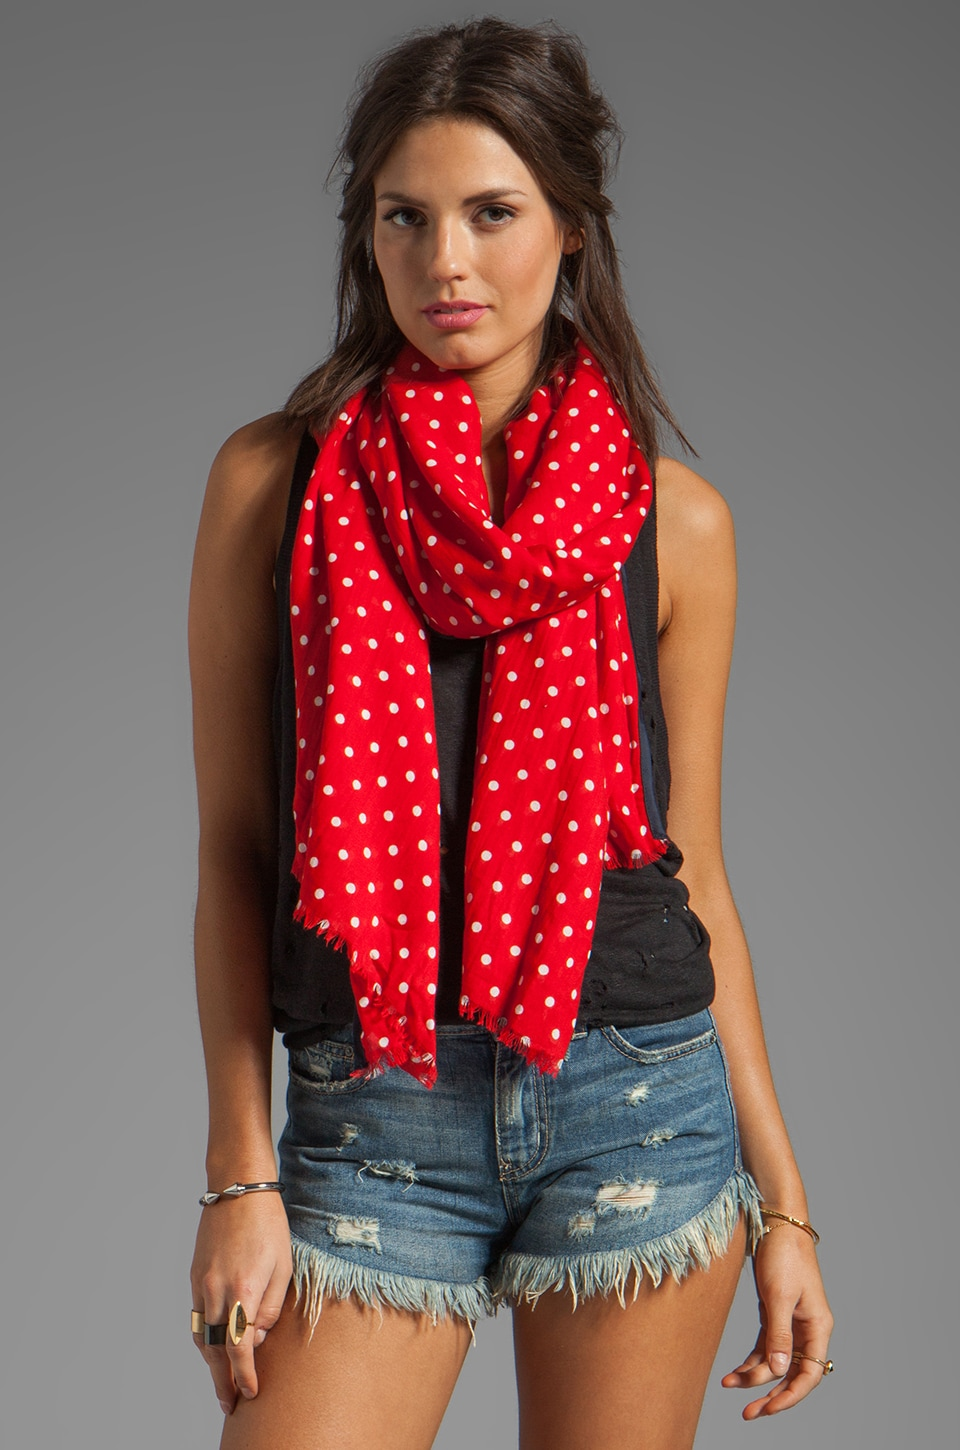 Juicy Couture Glorious Dot Scarf in Cordial